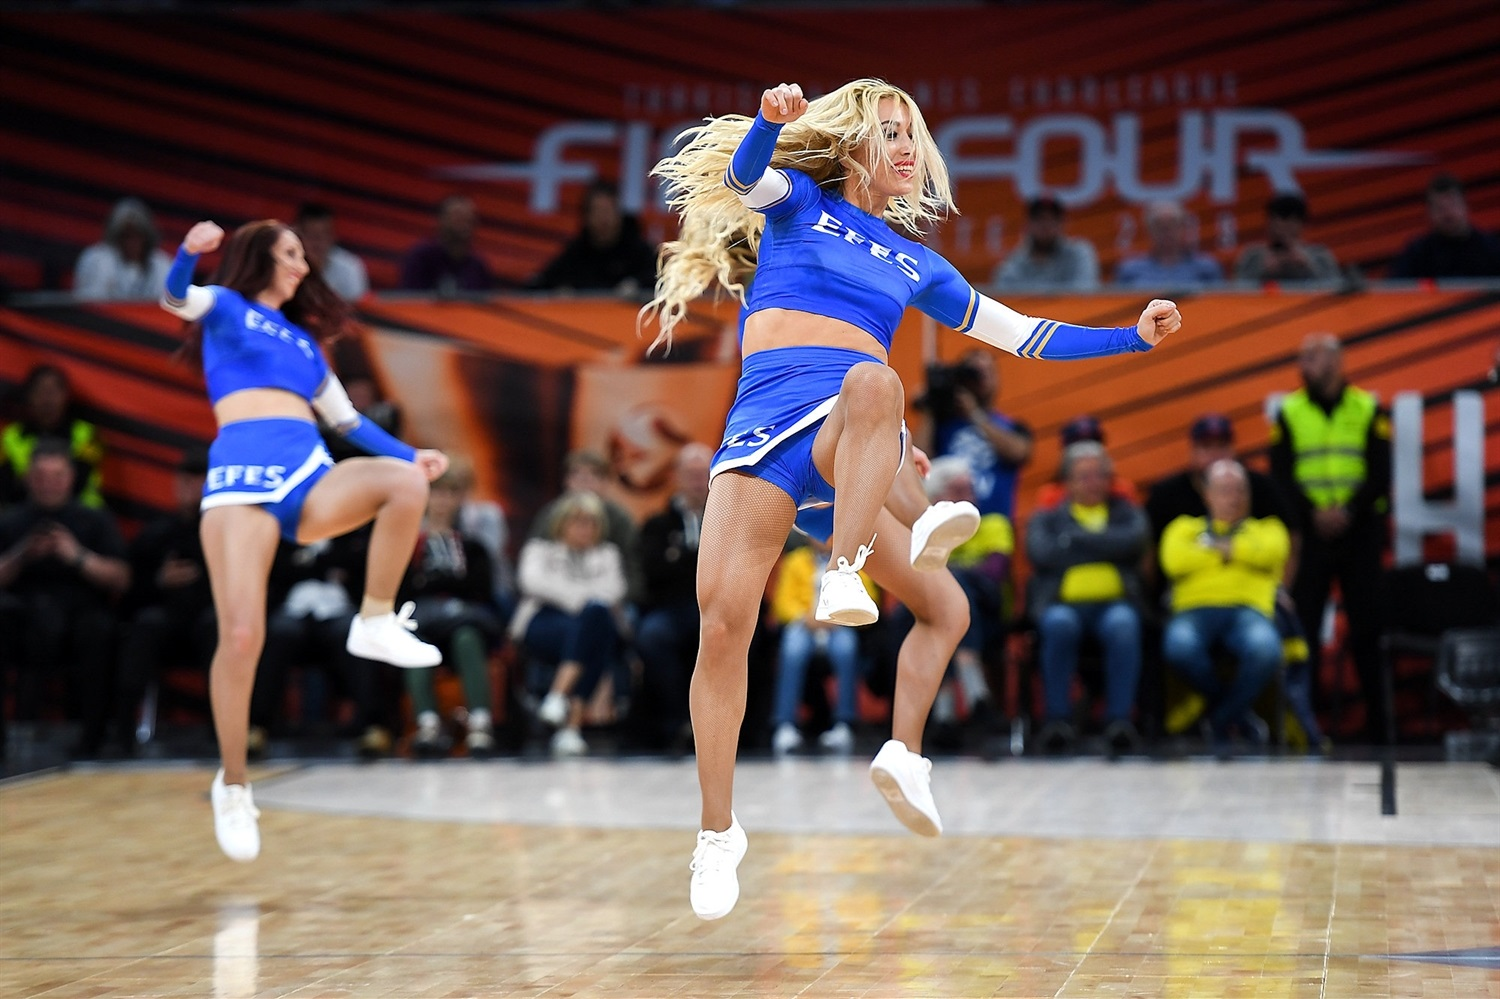 Cheerleaders - Final Four Vitoria-Gasteiz 2019 - EB18